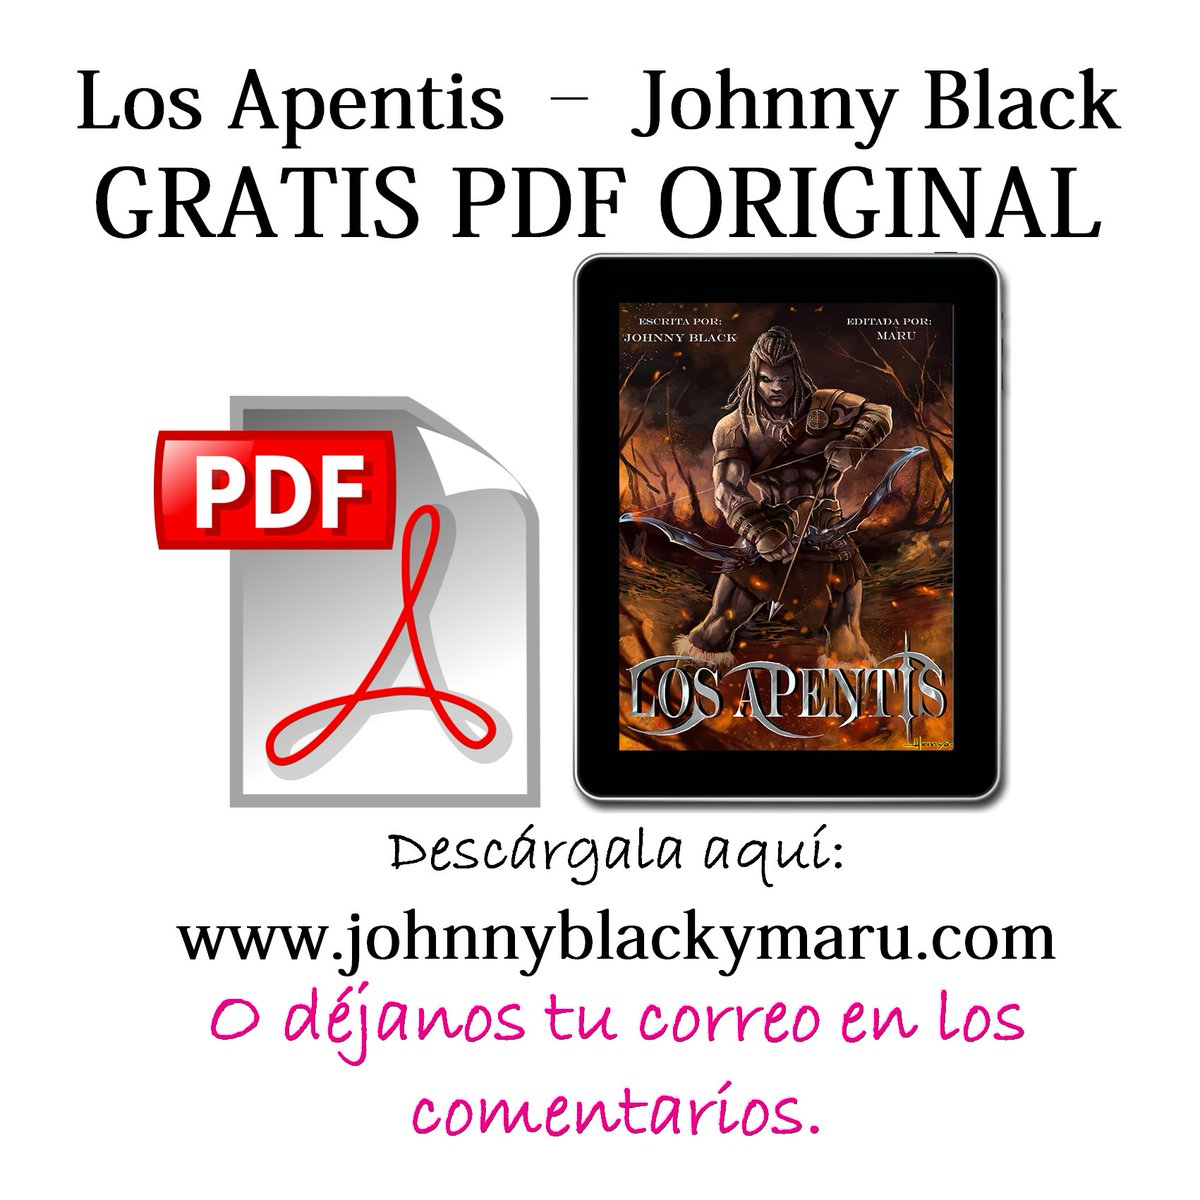 Libros Fantasia Pdf Johnnyblackescritor Hashtag On Twitter